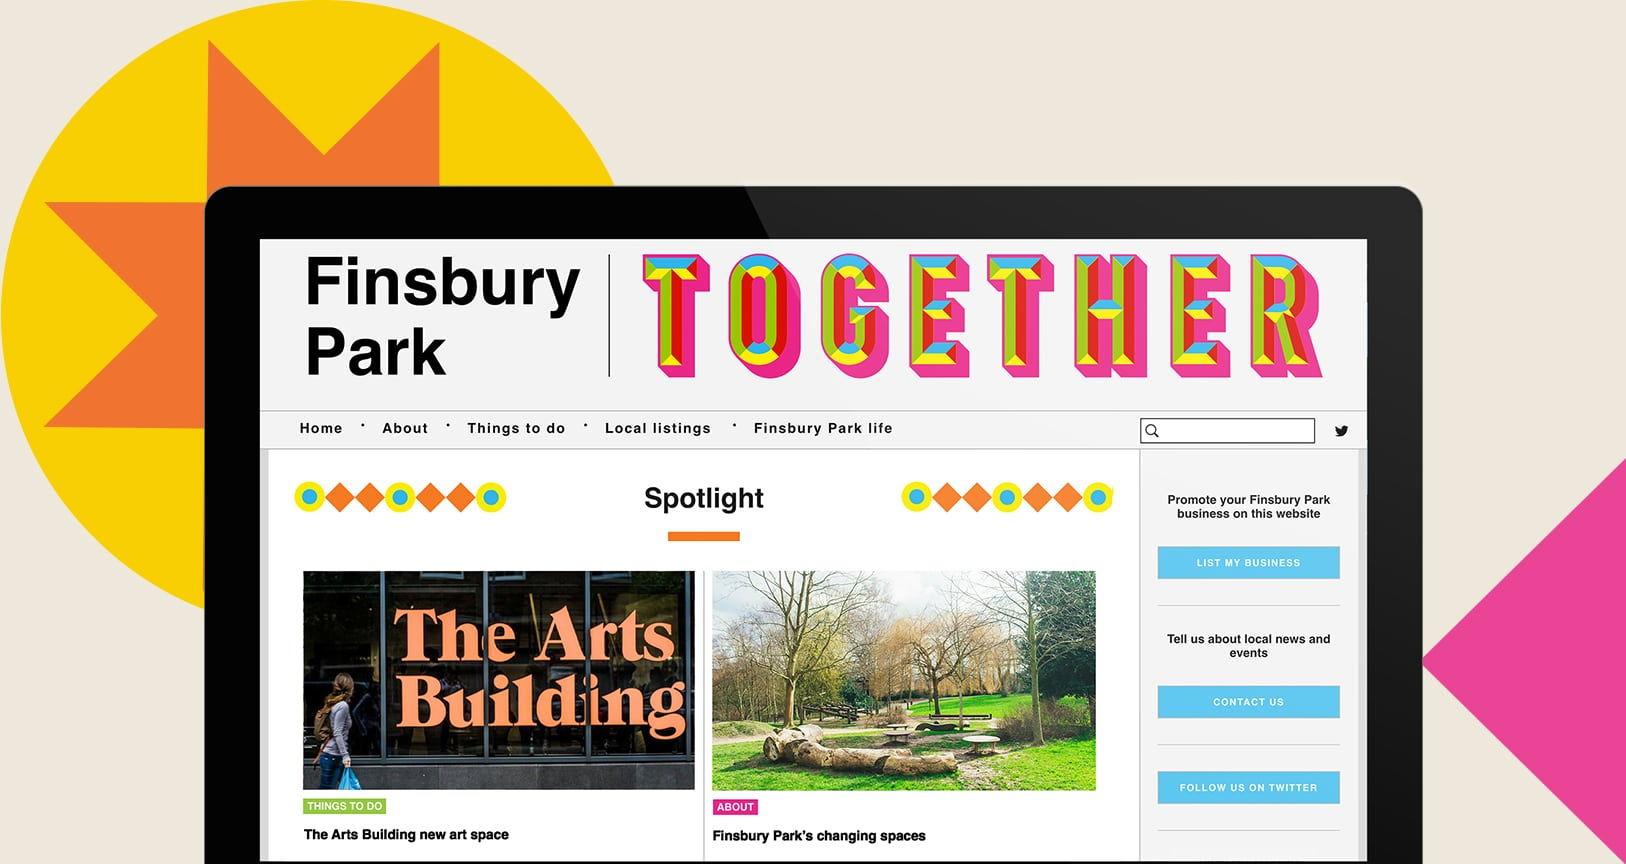 Finsbury Park - Together